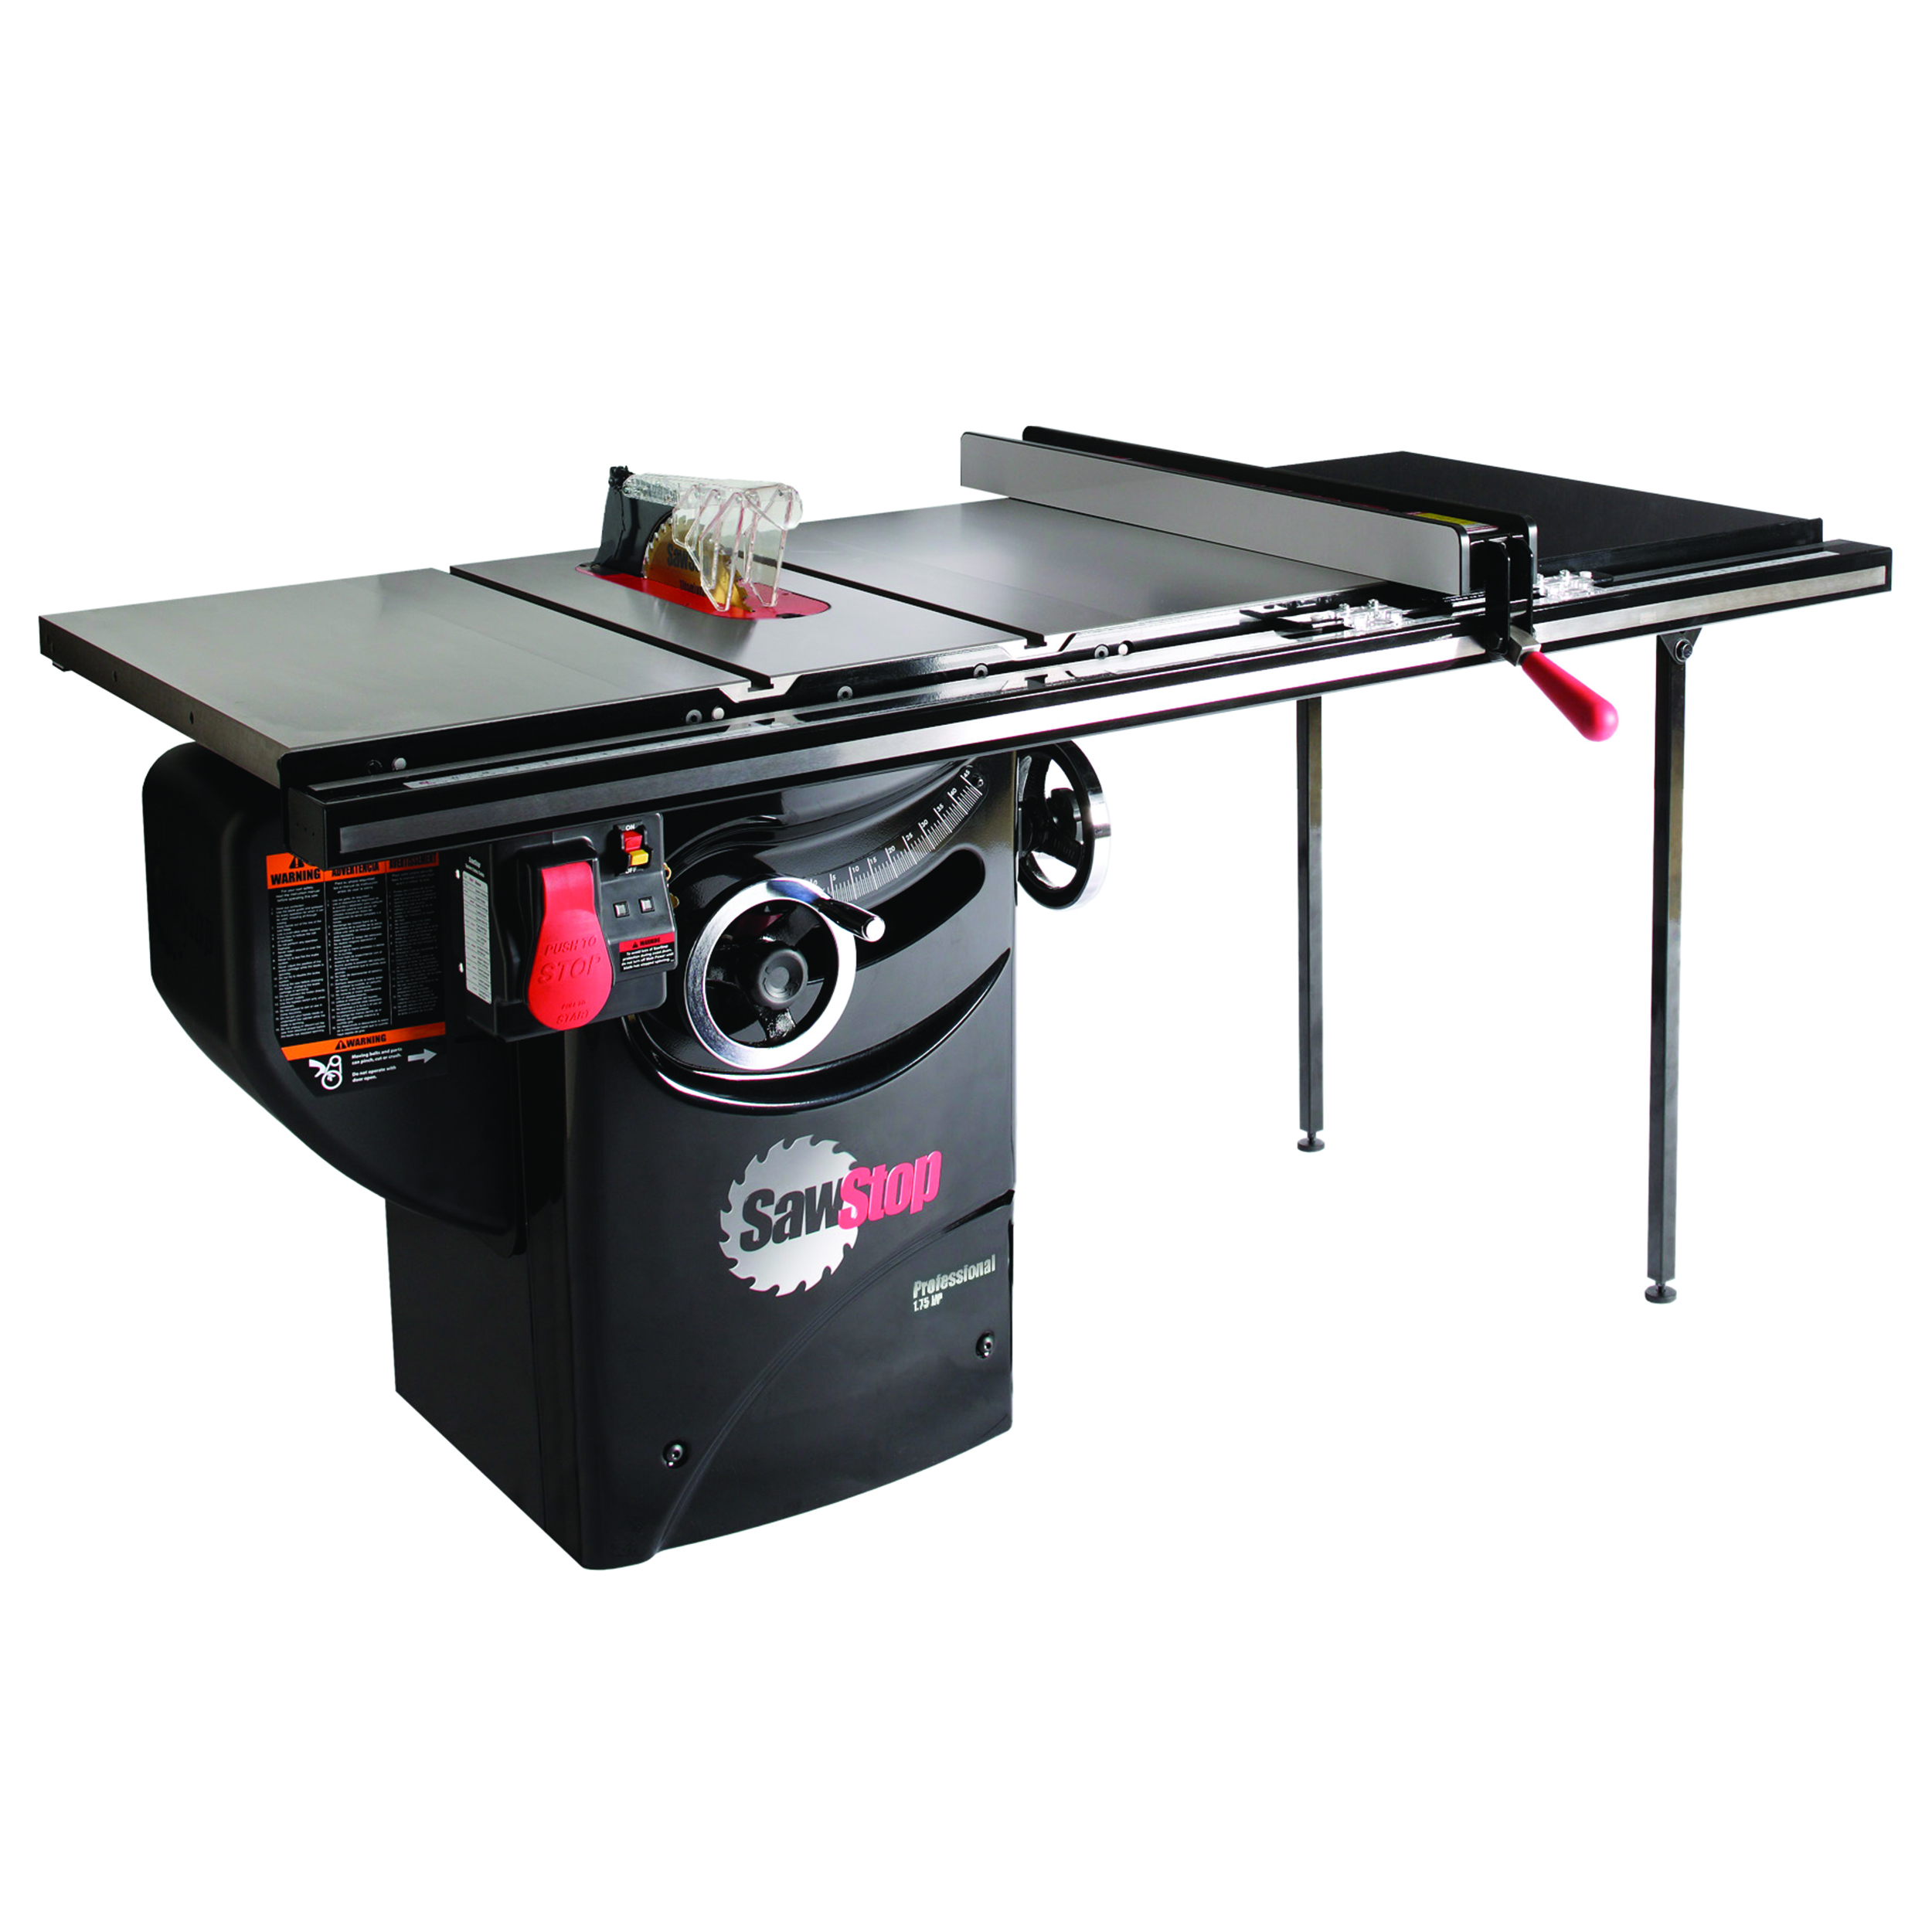 1-3/4HP 1PH 110V Professional Cabinet Saw with 36